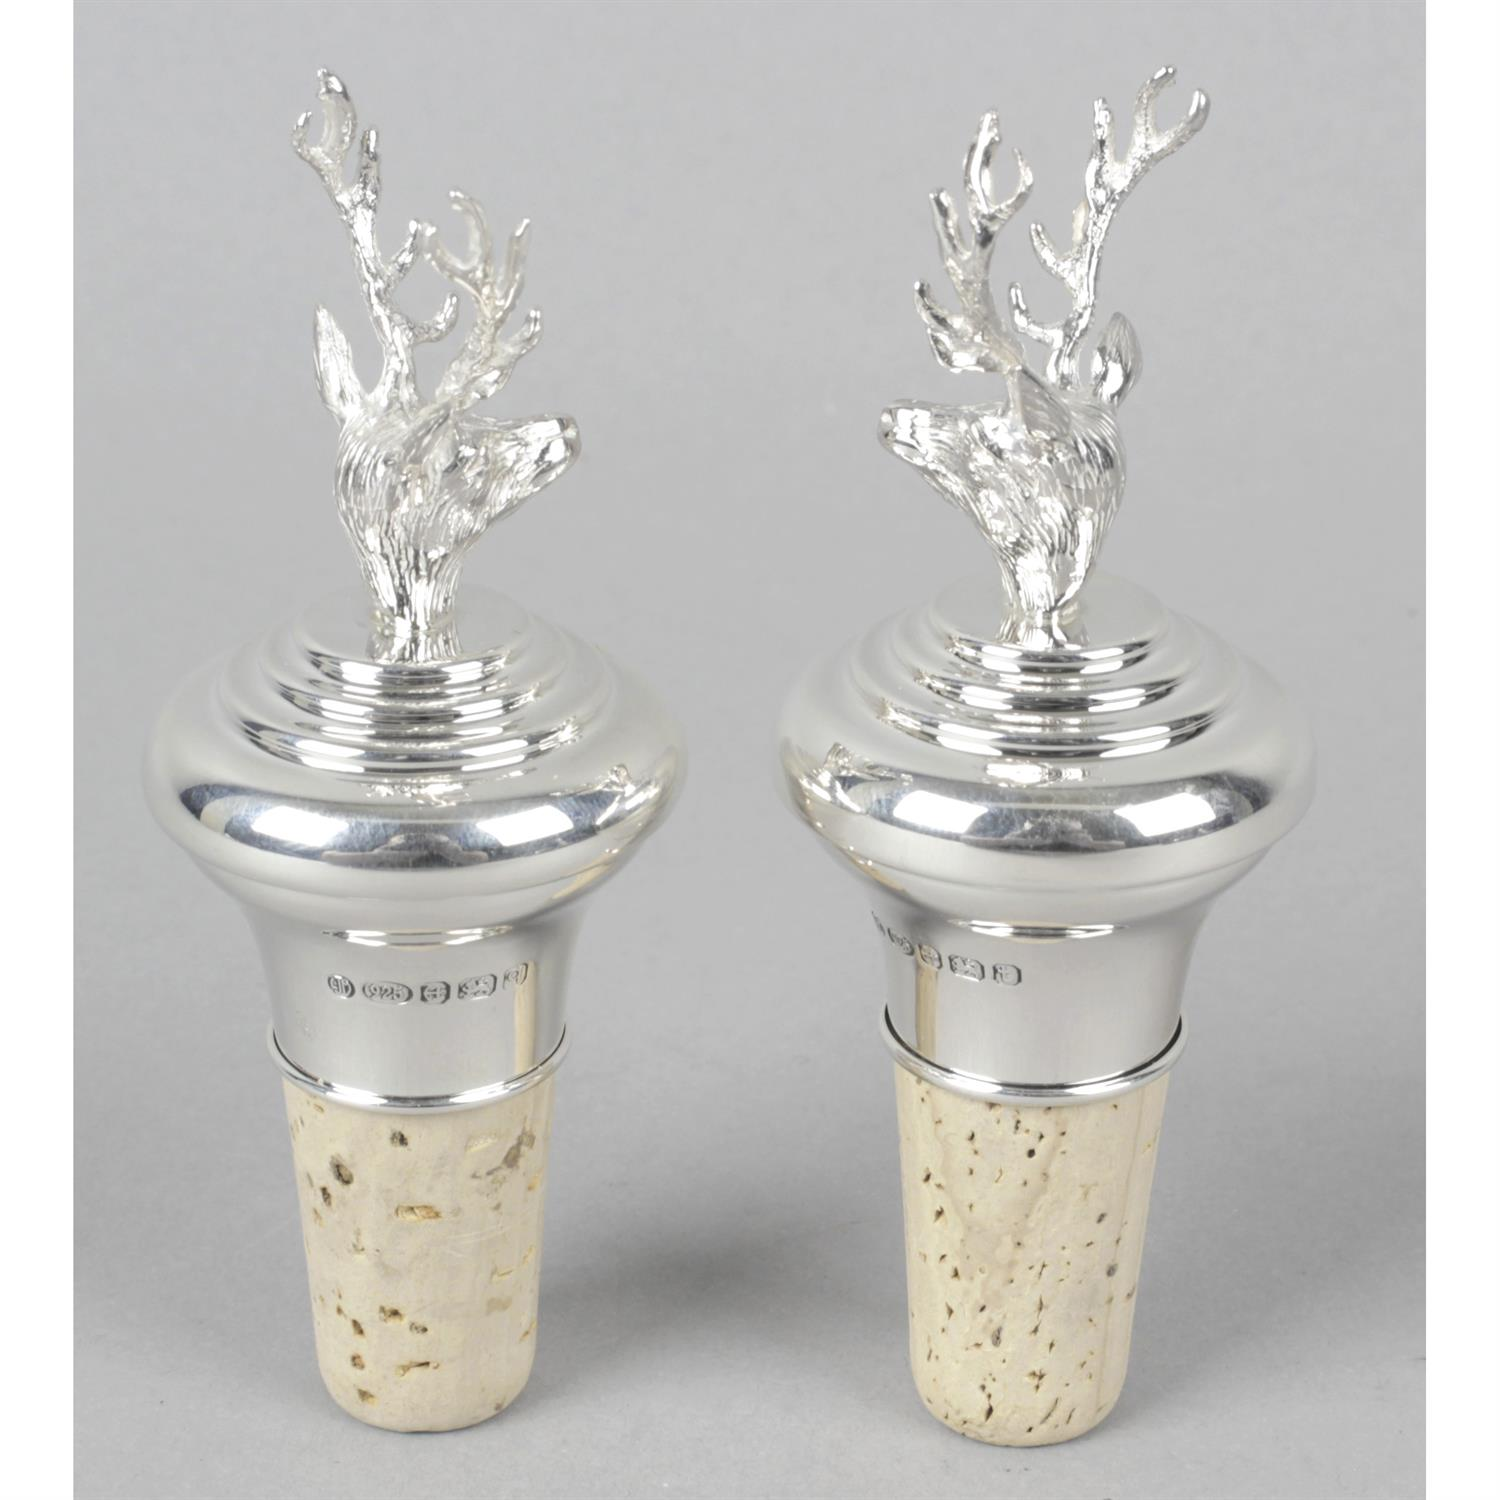 A pair of silver mounted and cork bottle stops. - Image 2 of 2